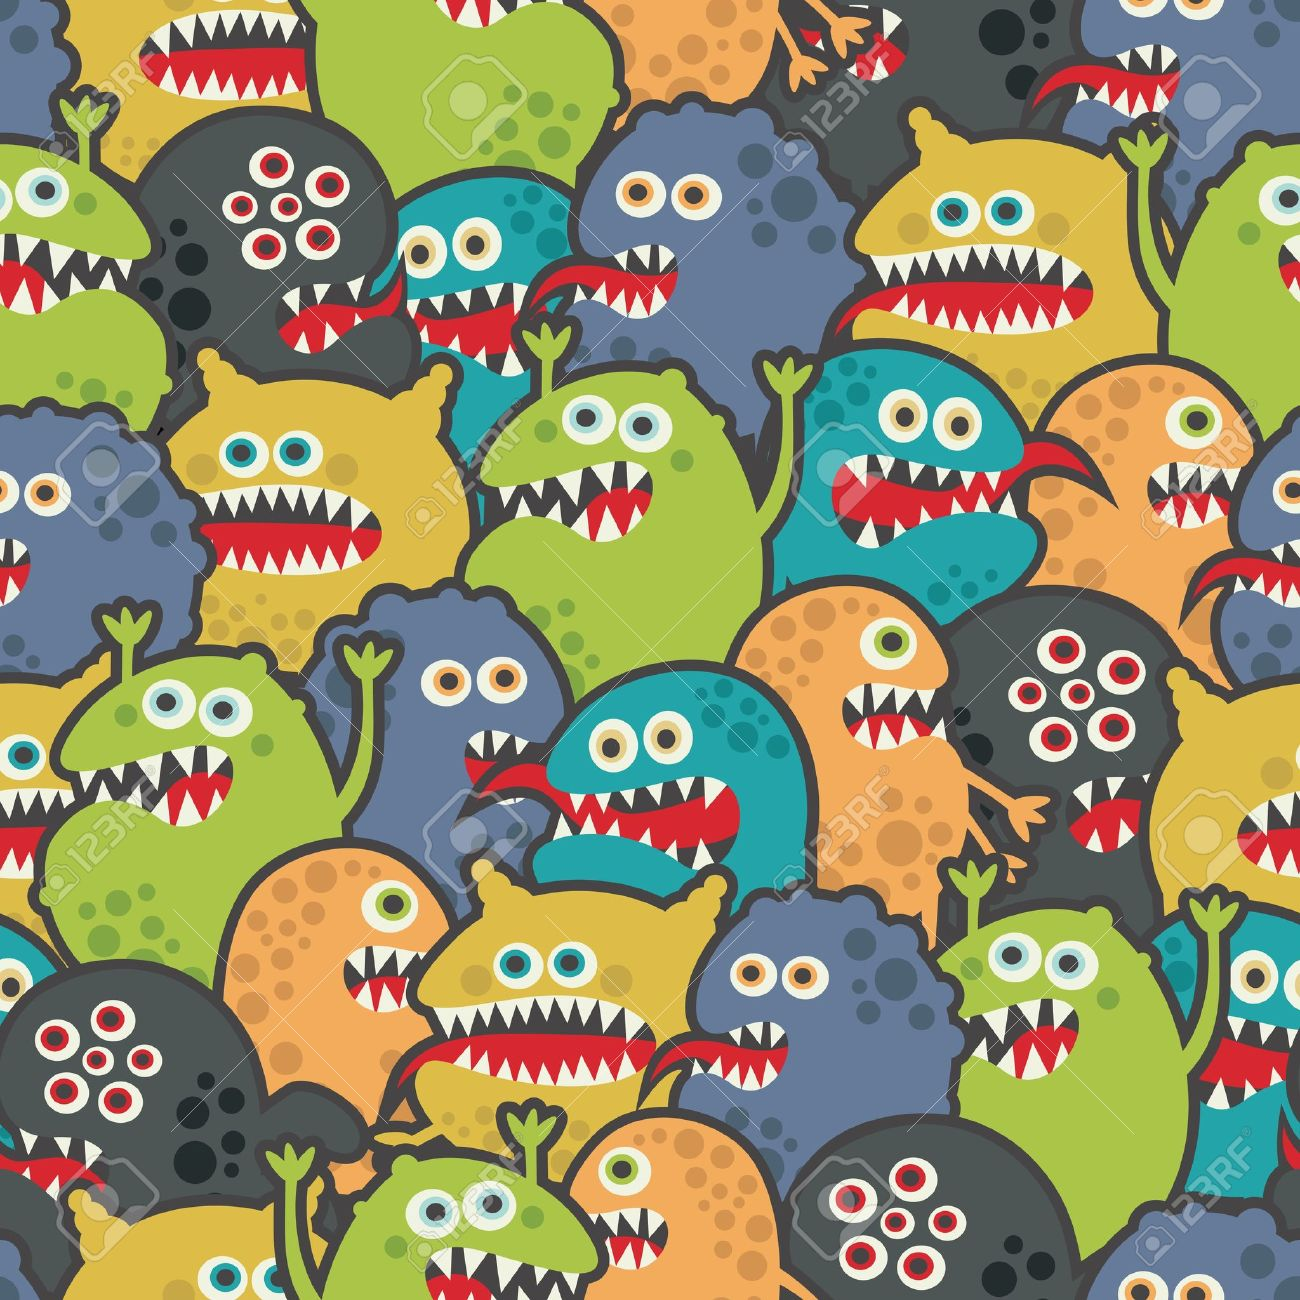 Cute monsters seamless texture. Stock Vector - 14620720